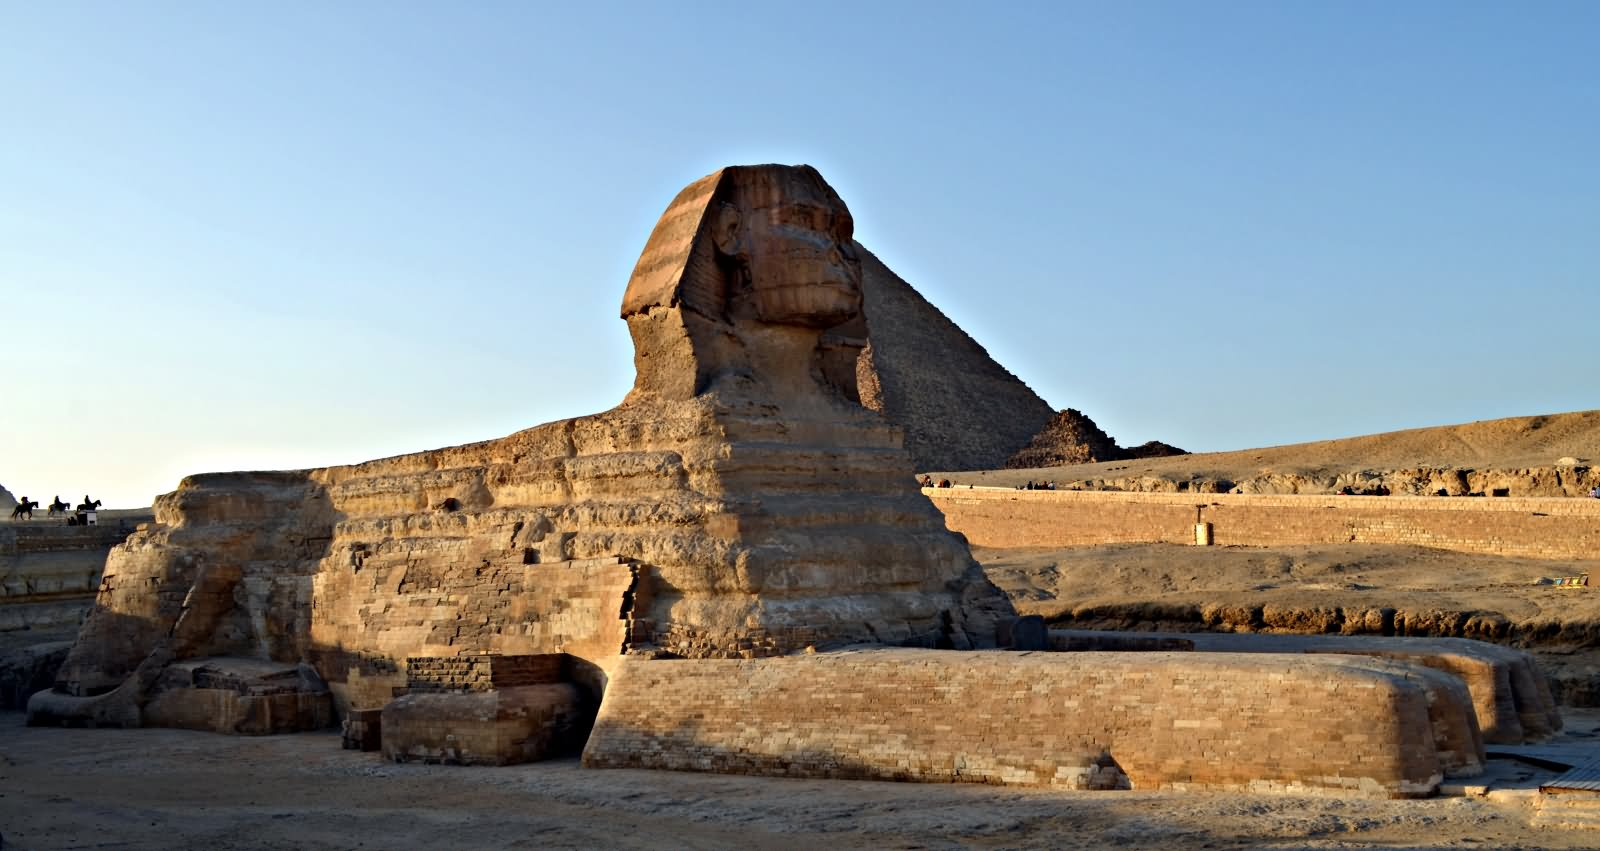 The Great Sphinx of Giza In Egypt Picture